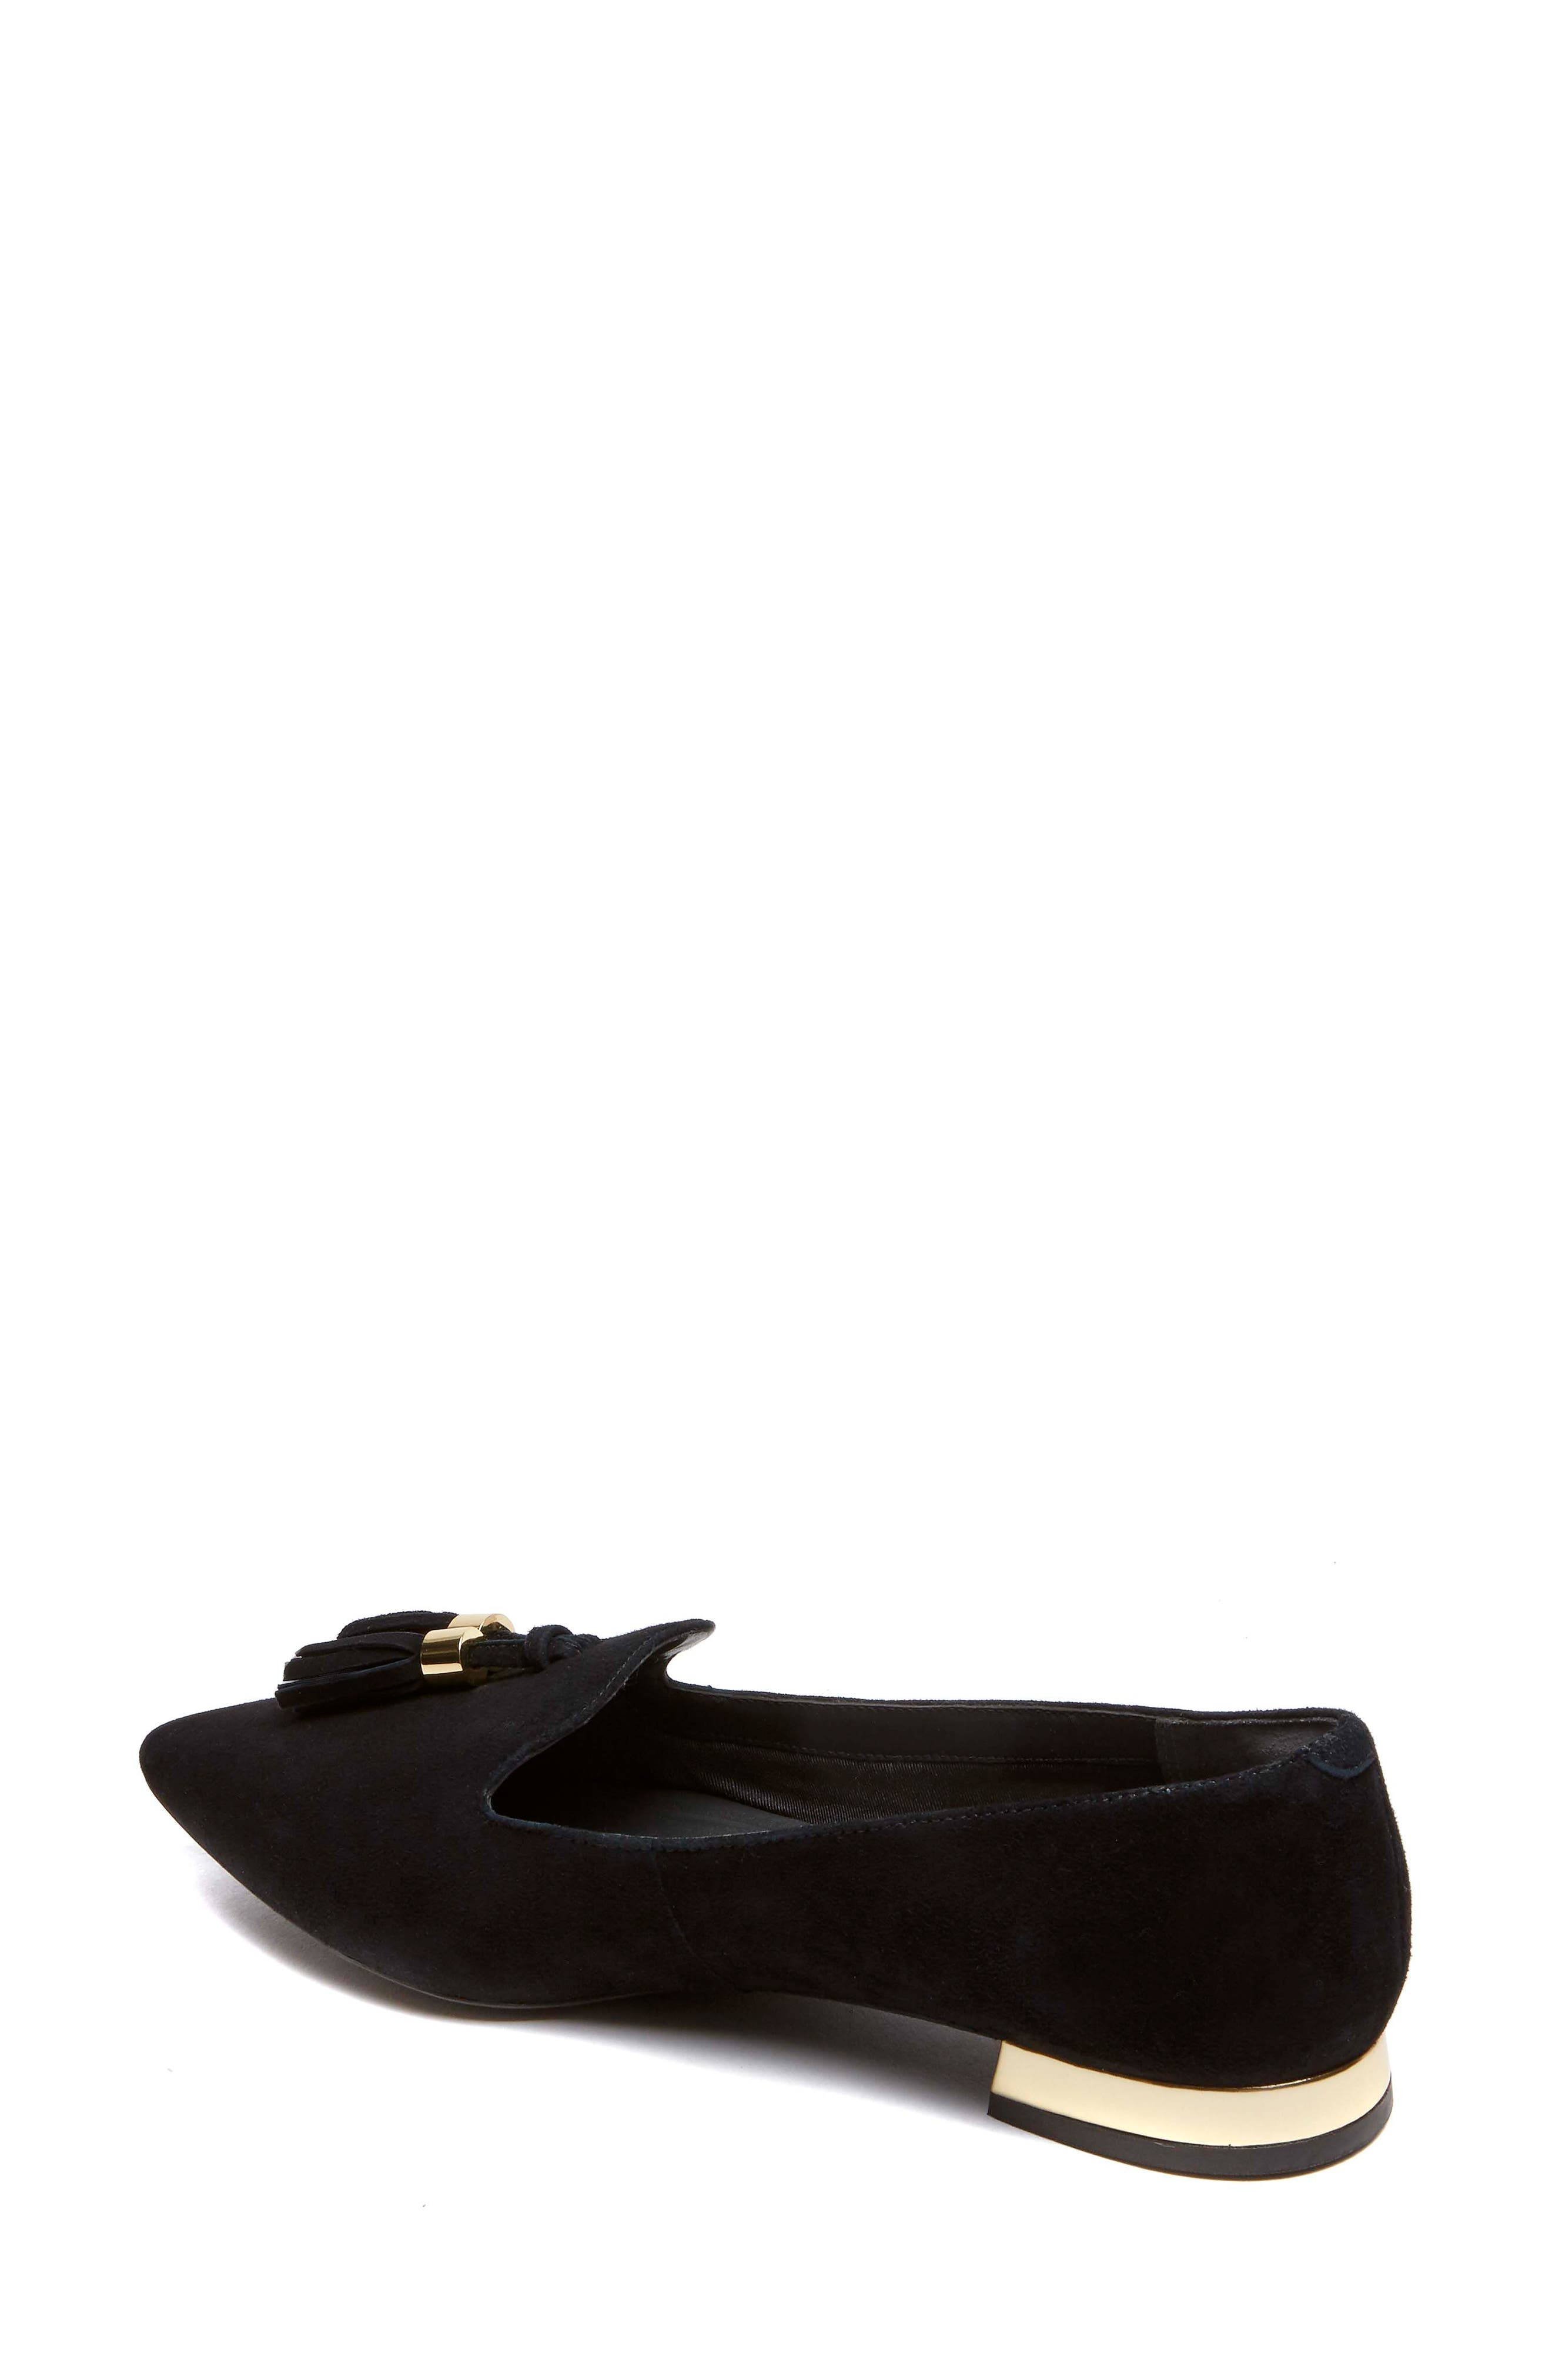 ROCKPORT, Total Motion Zuly Luxe Pointy Toe Loafer, Alternate thumbnail 2, color, BLACK SUEDE